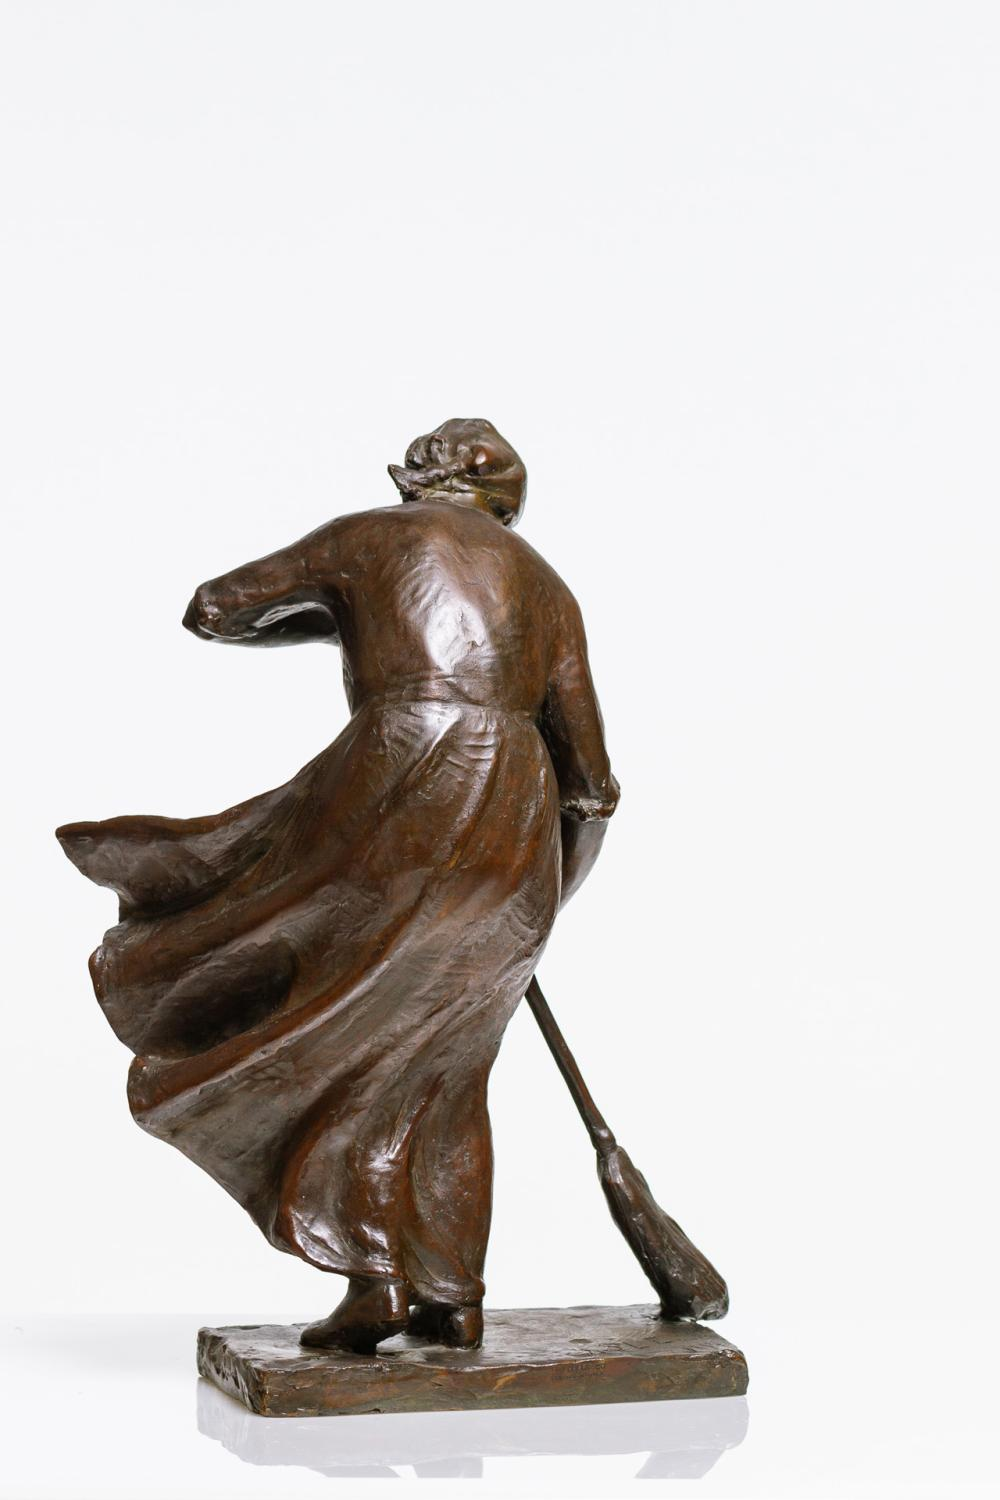 "ABASTENIA ST. LEGER EBERLE, American (1878-1942), ""Windy Doorstep,"" 1910, bronze, signed ""A.S.L. Eberle"" and dated ""1910,"" inscribed..."